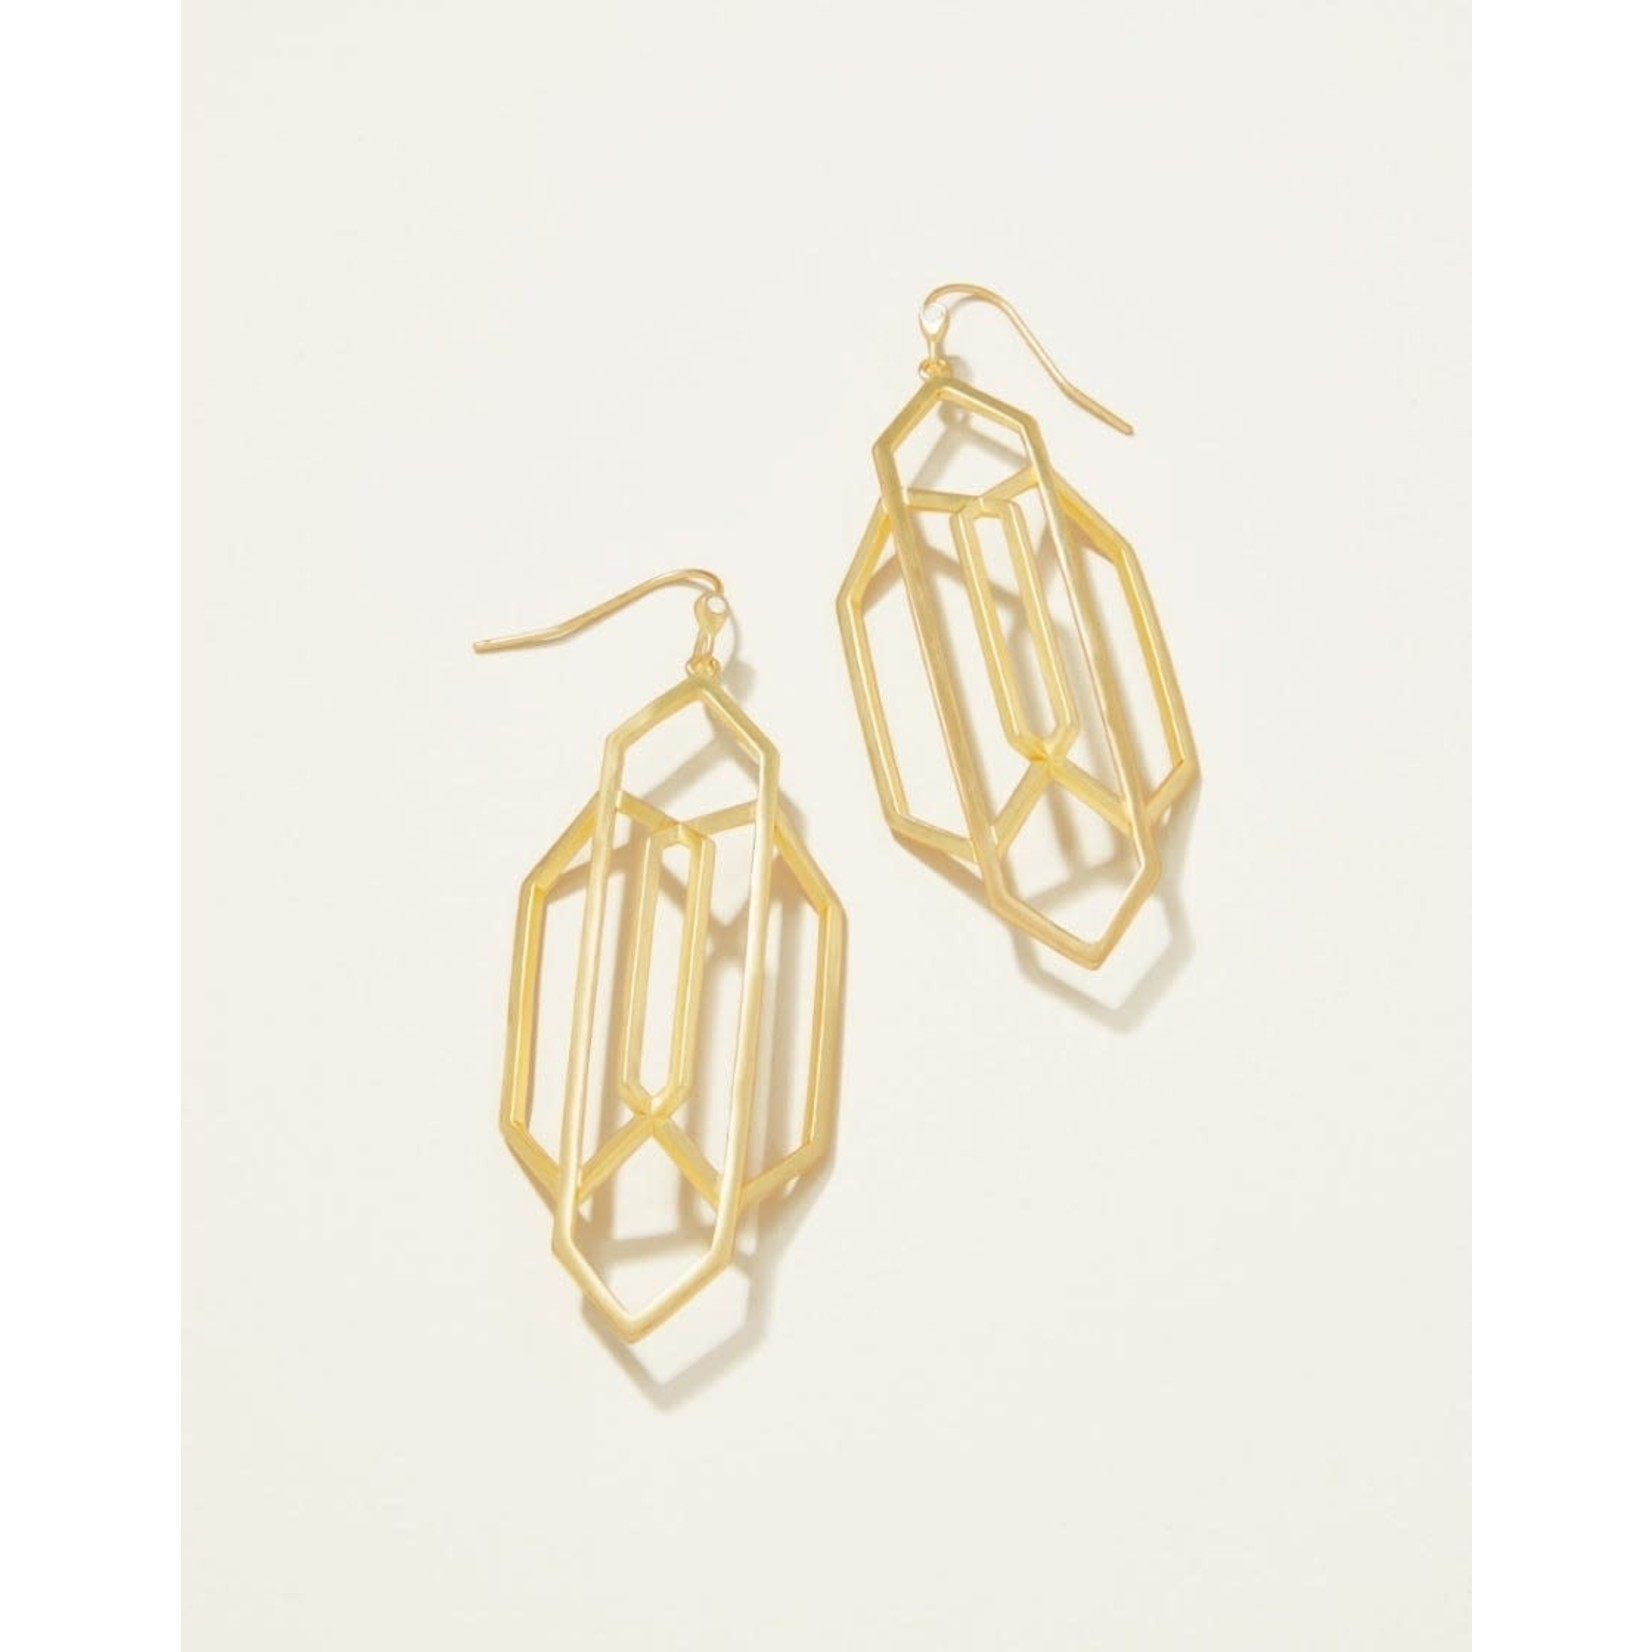 Spartina Art Deco Earrings in Gold